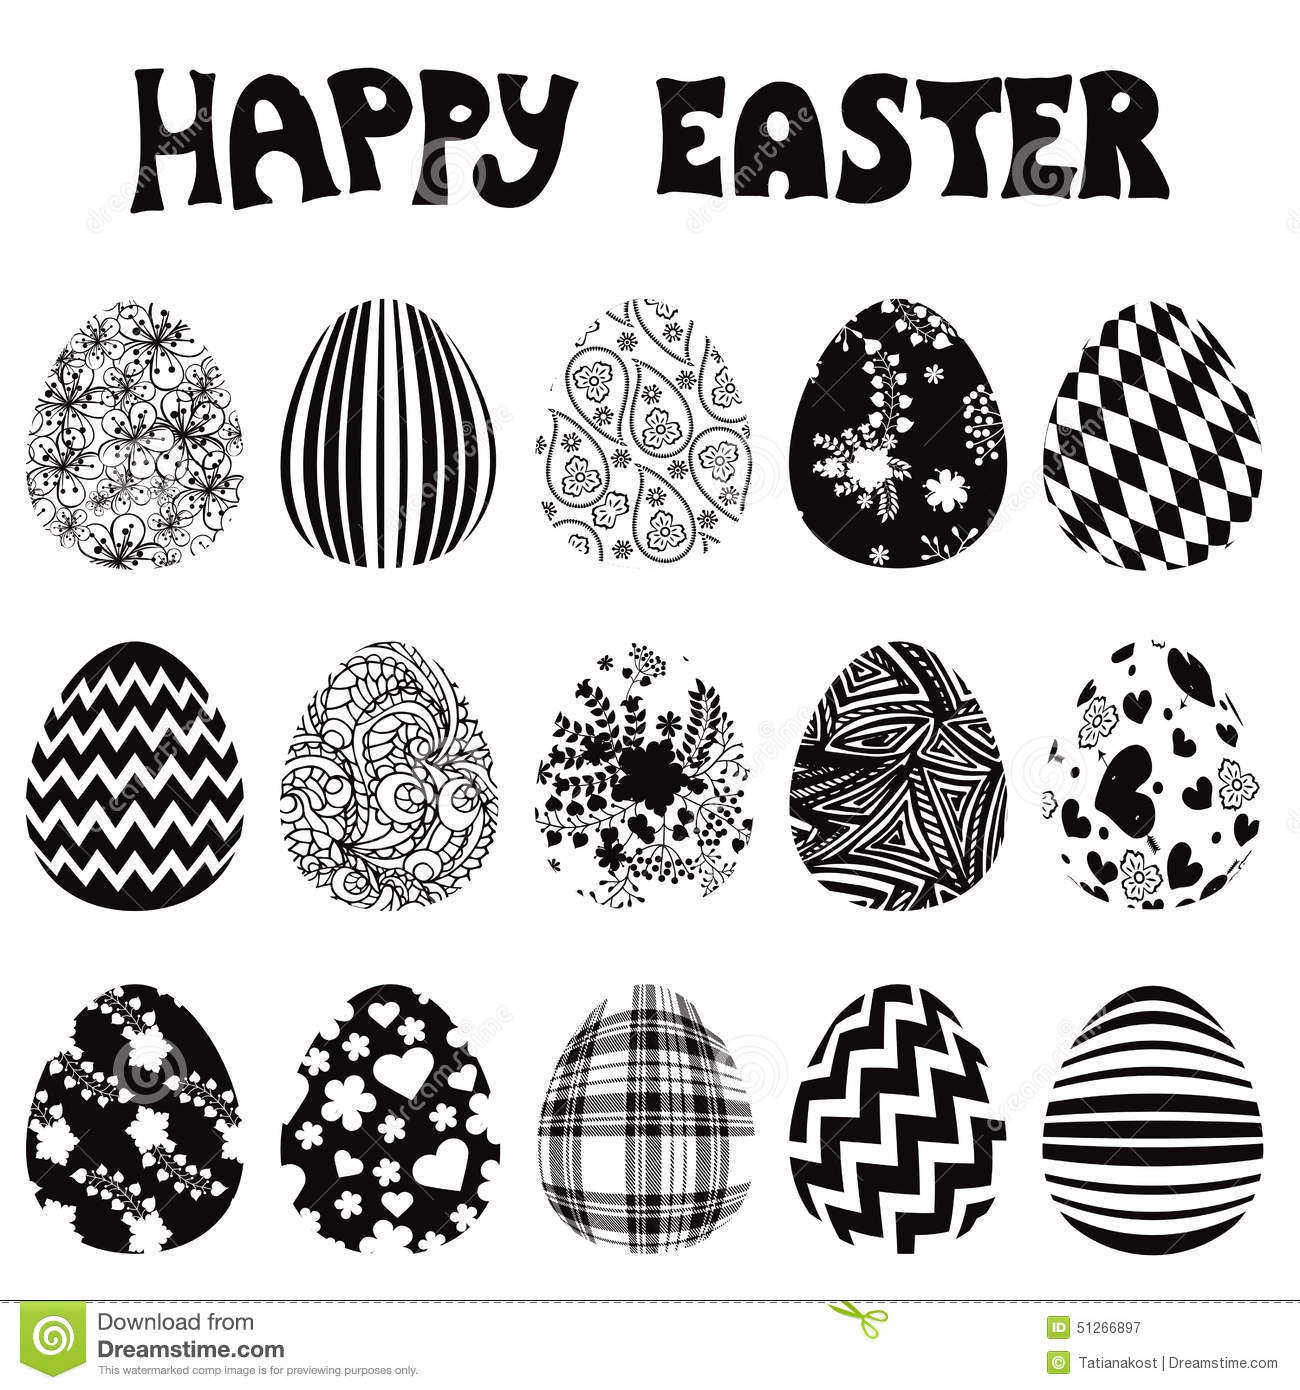 Easter egg clipart silhouette jpg black and white download Easter egg clipart silhouette - ClipartFest jpg black and white download